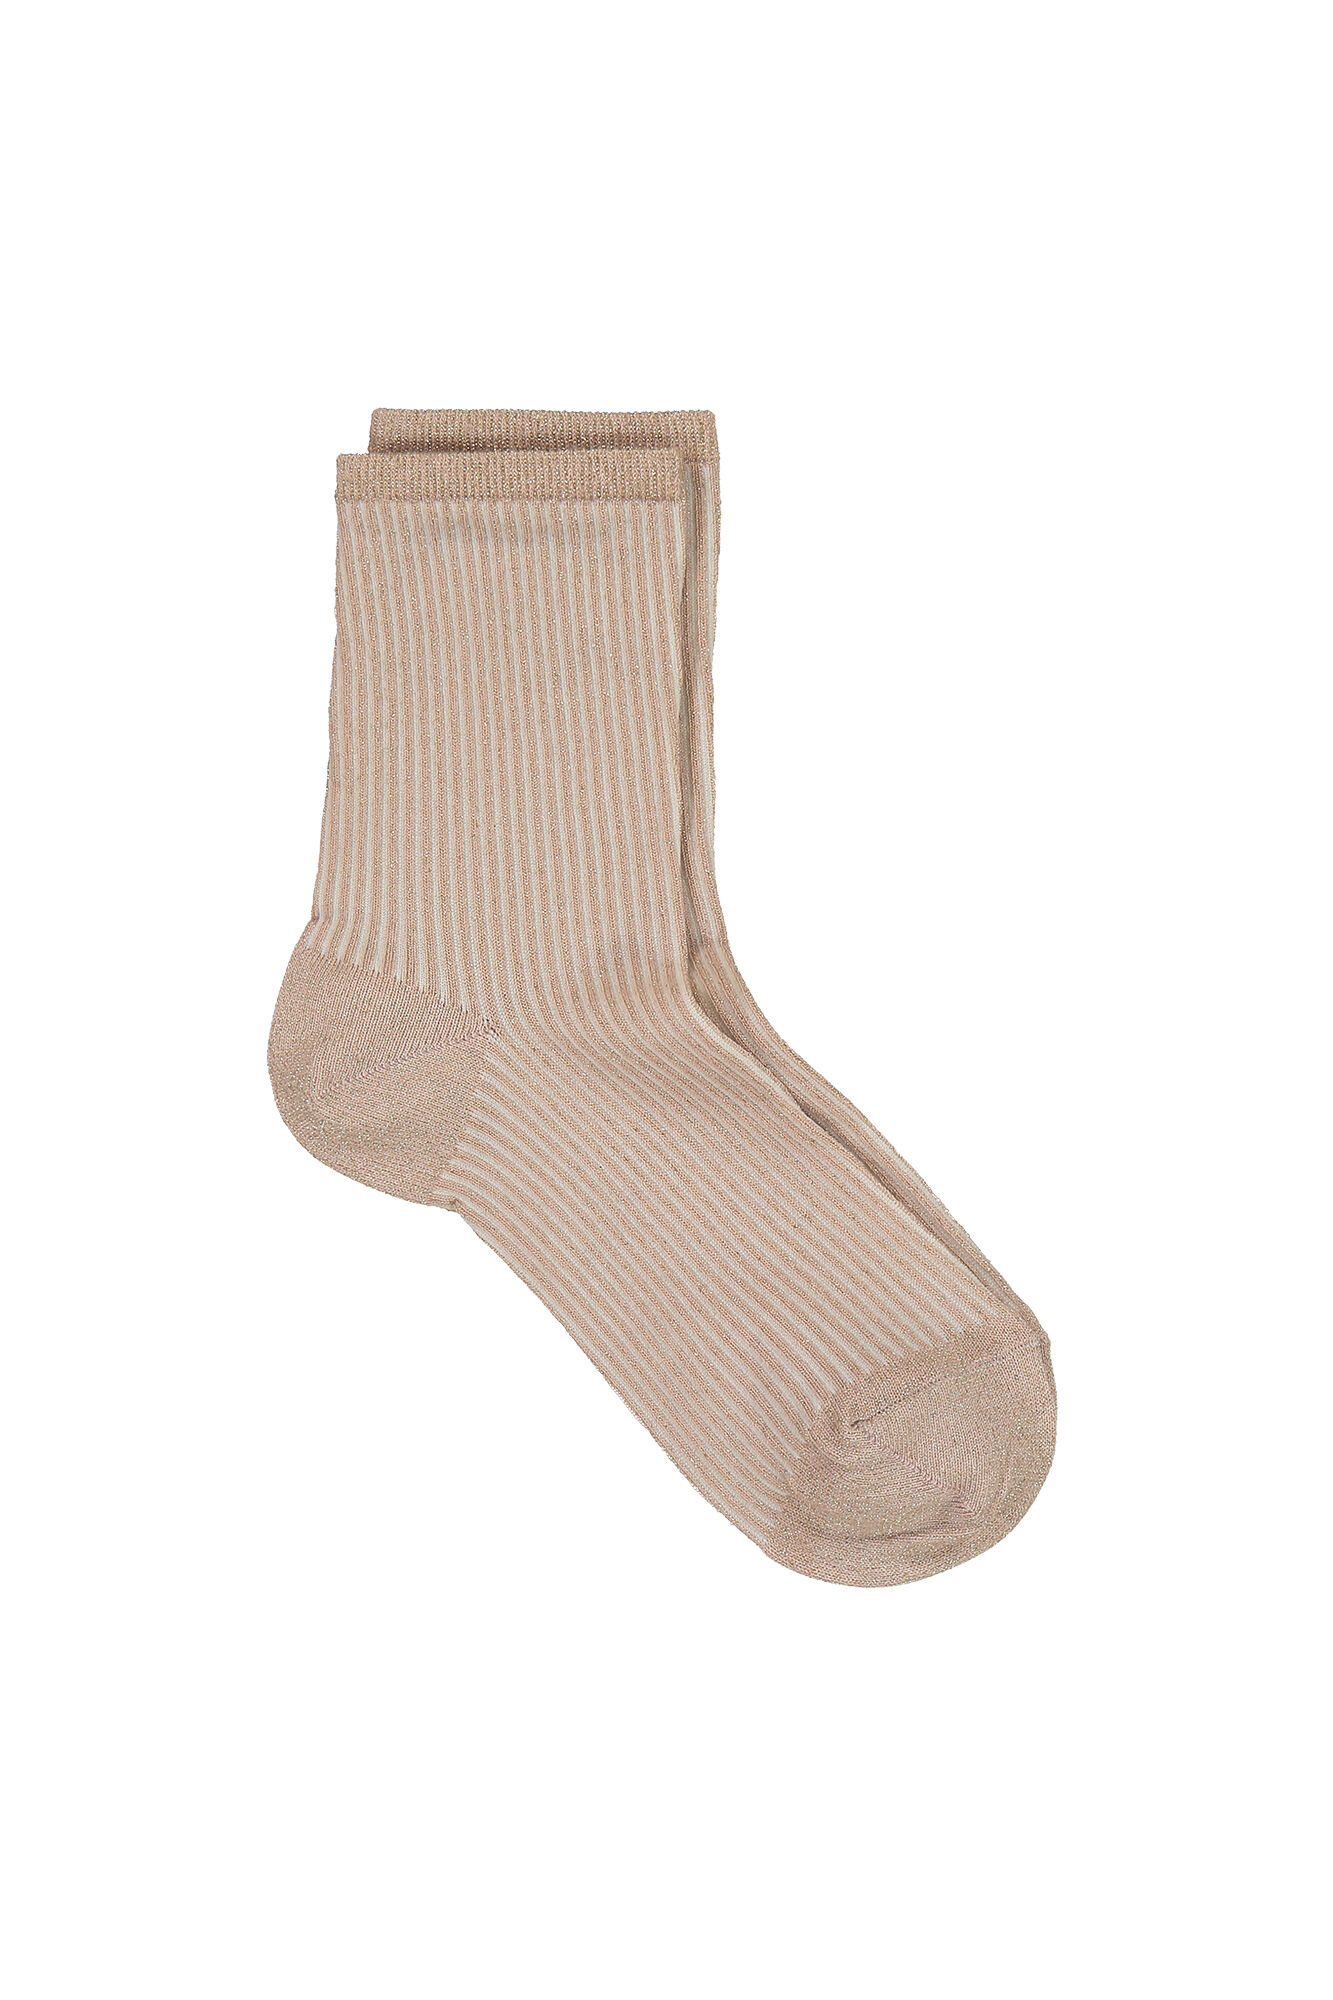 ENLIVA STRIPED SOCKS 5615